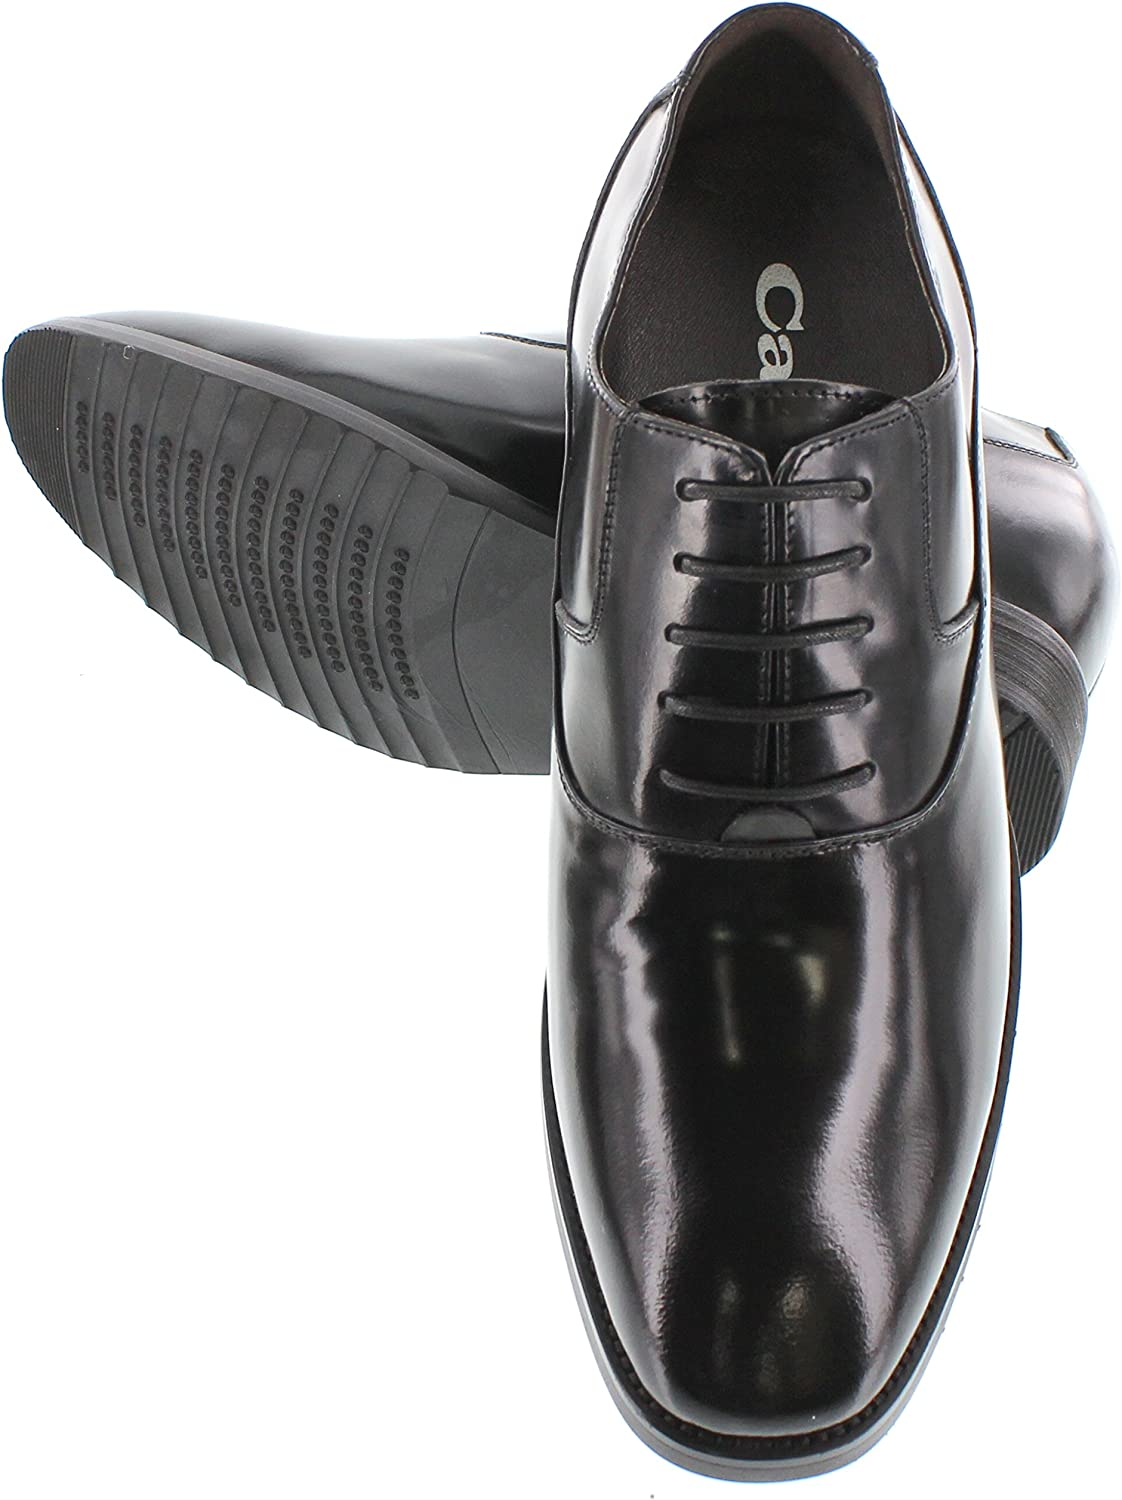 G1019-3 Inches Taller Black Premium Leather Lace-up Formal Dress Oxfords CALTO Mens Invisible Height Increasing Elevator Shoes